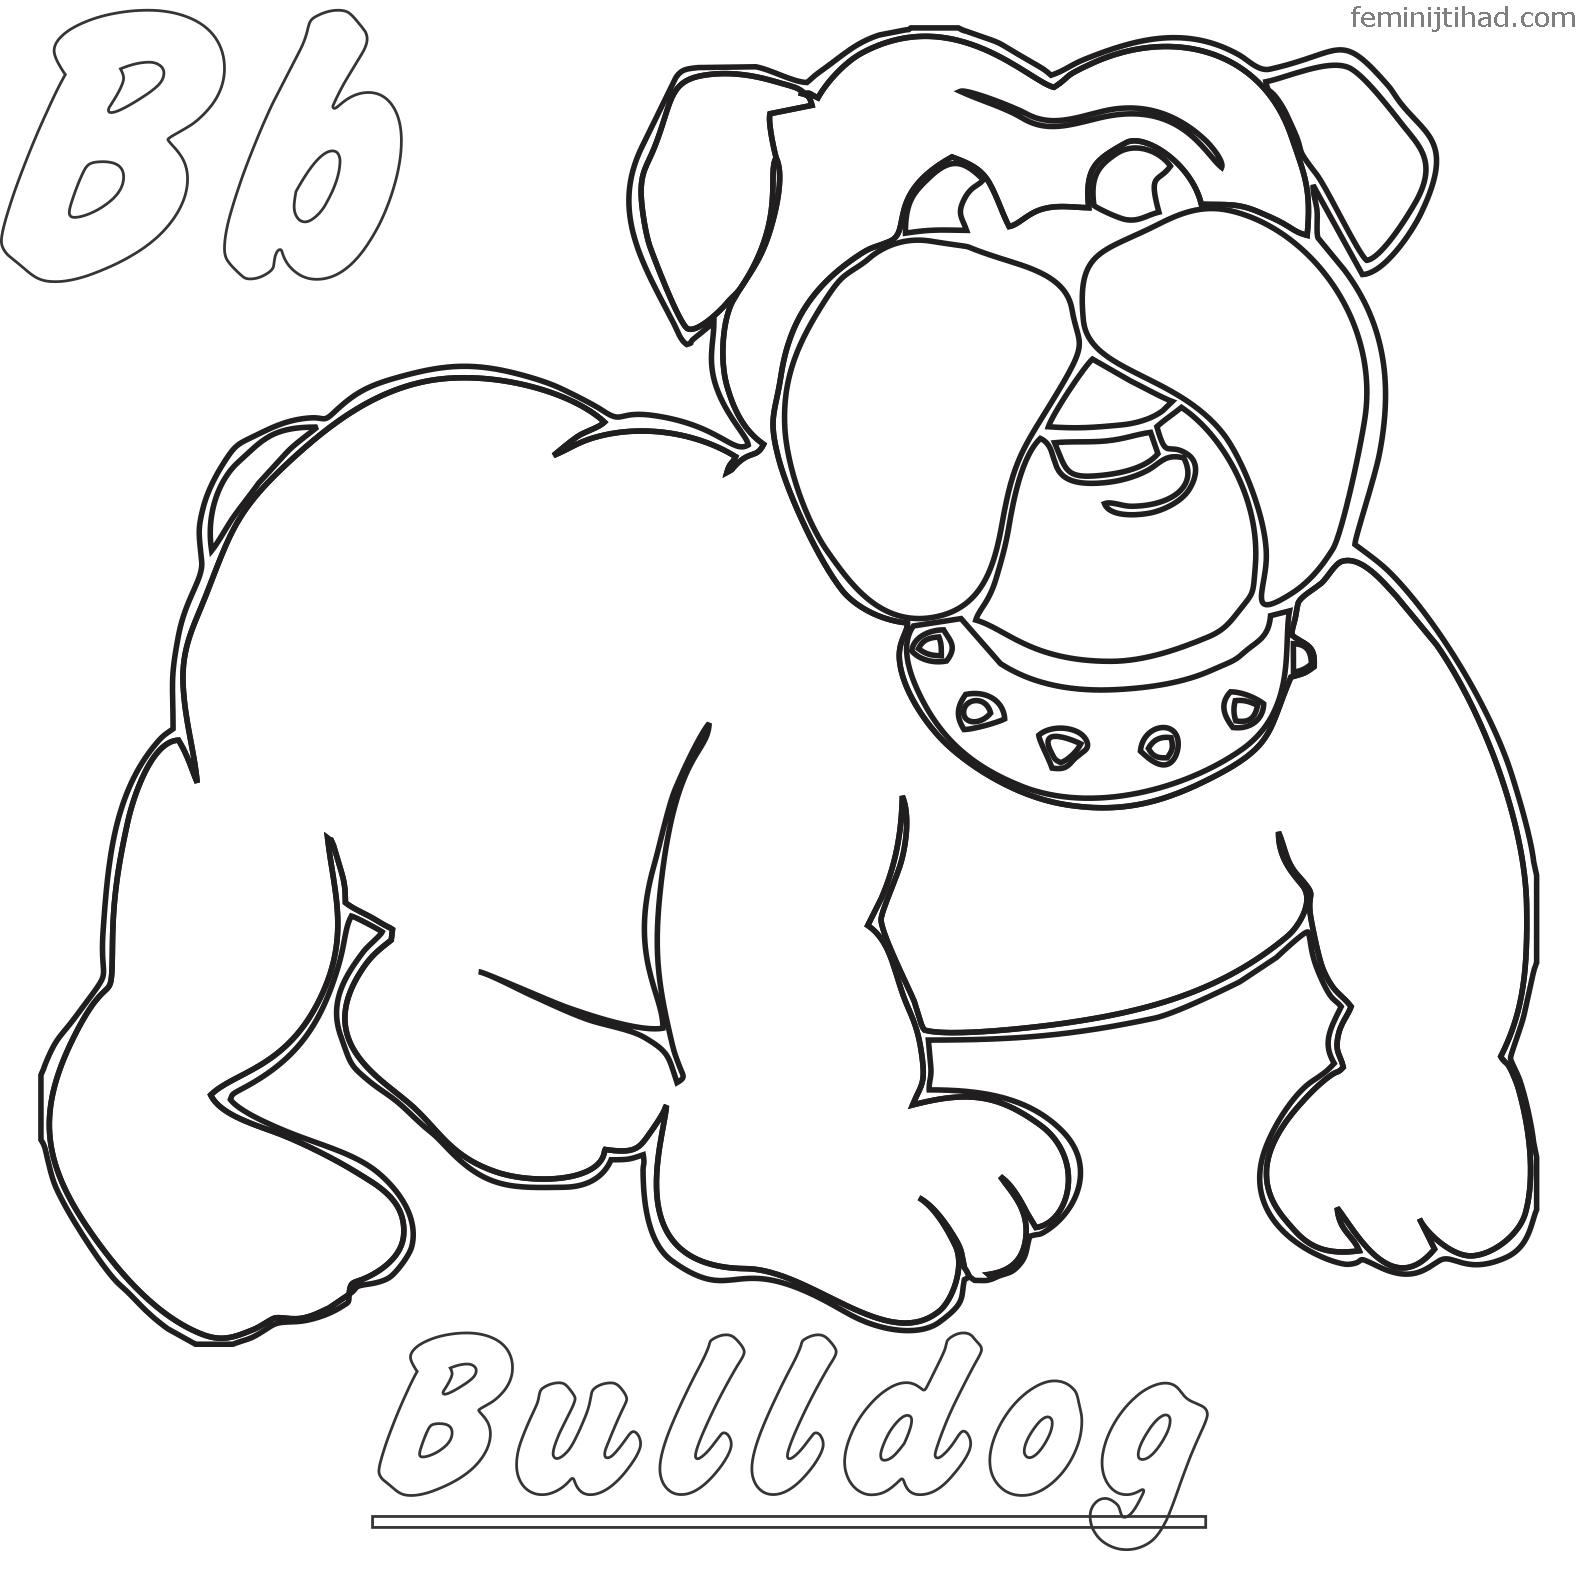 Bulldog Coloring Pages Printable Animal coloring pages